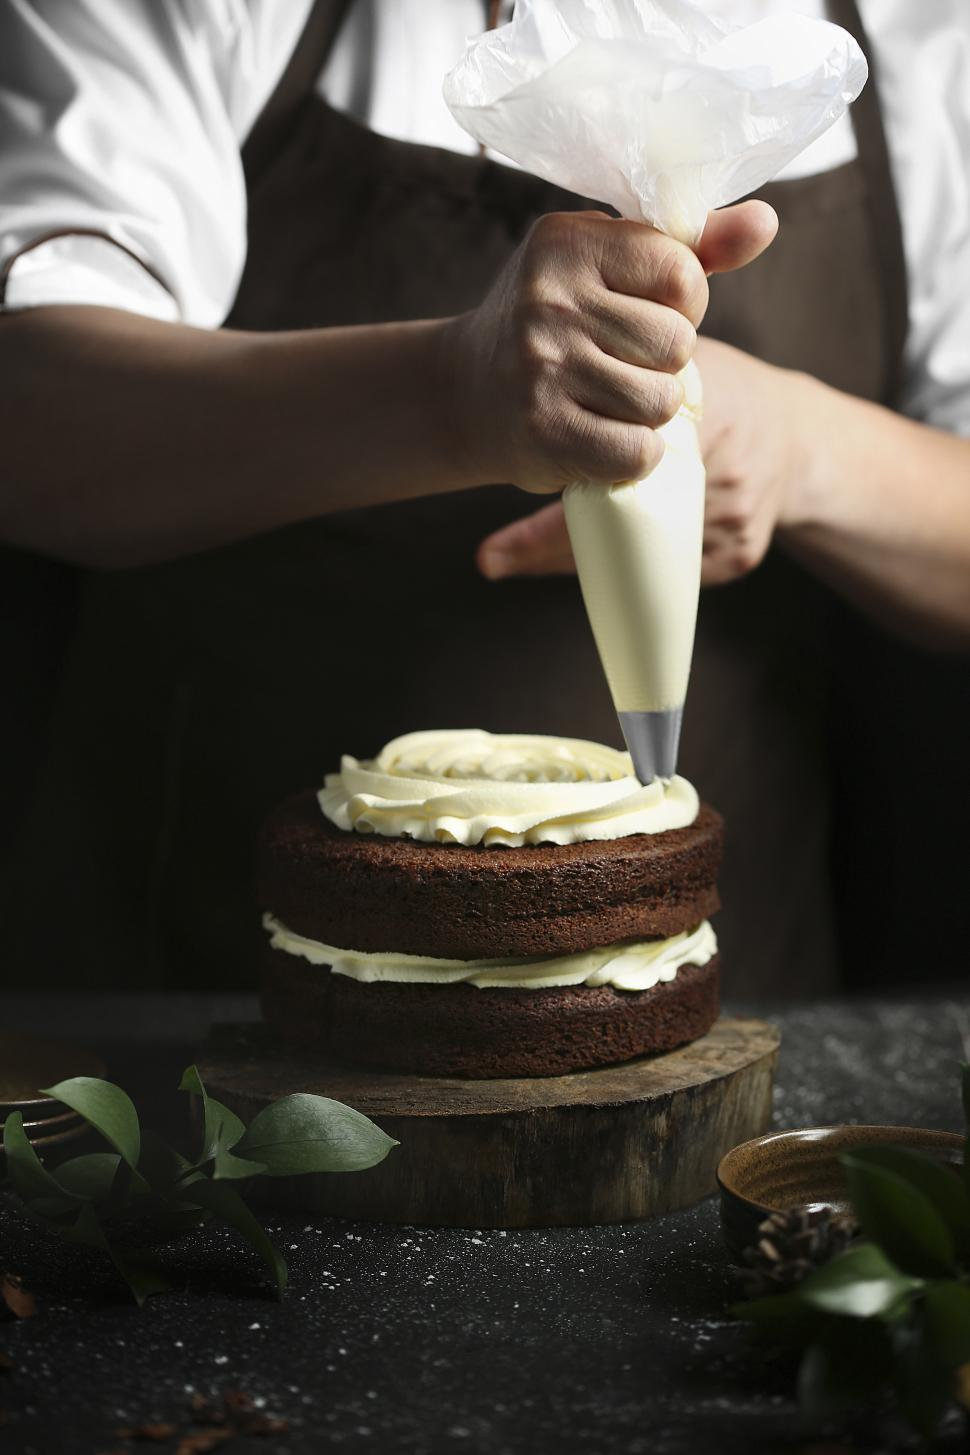 Download Free Stock HD Photo of Piping white cream onto chocolate cake with piping bag Online